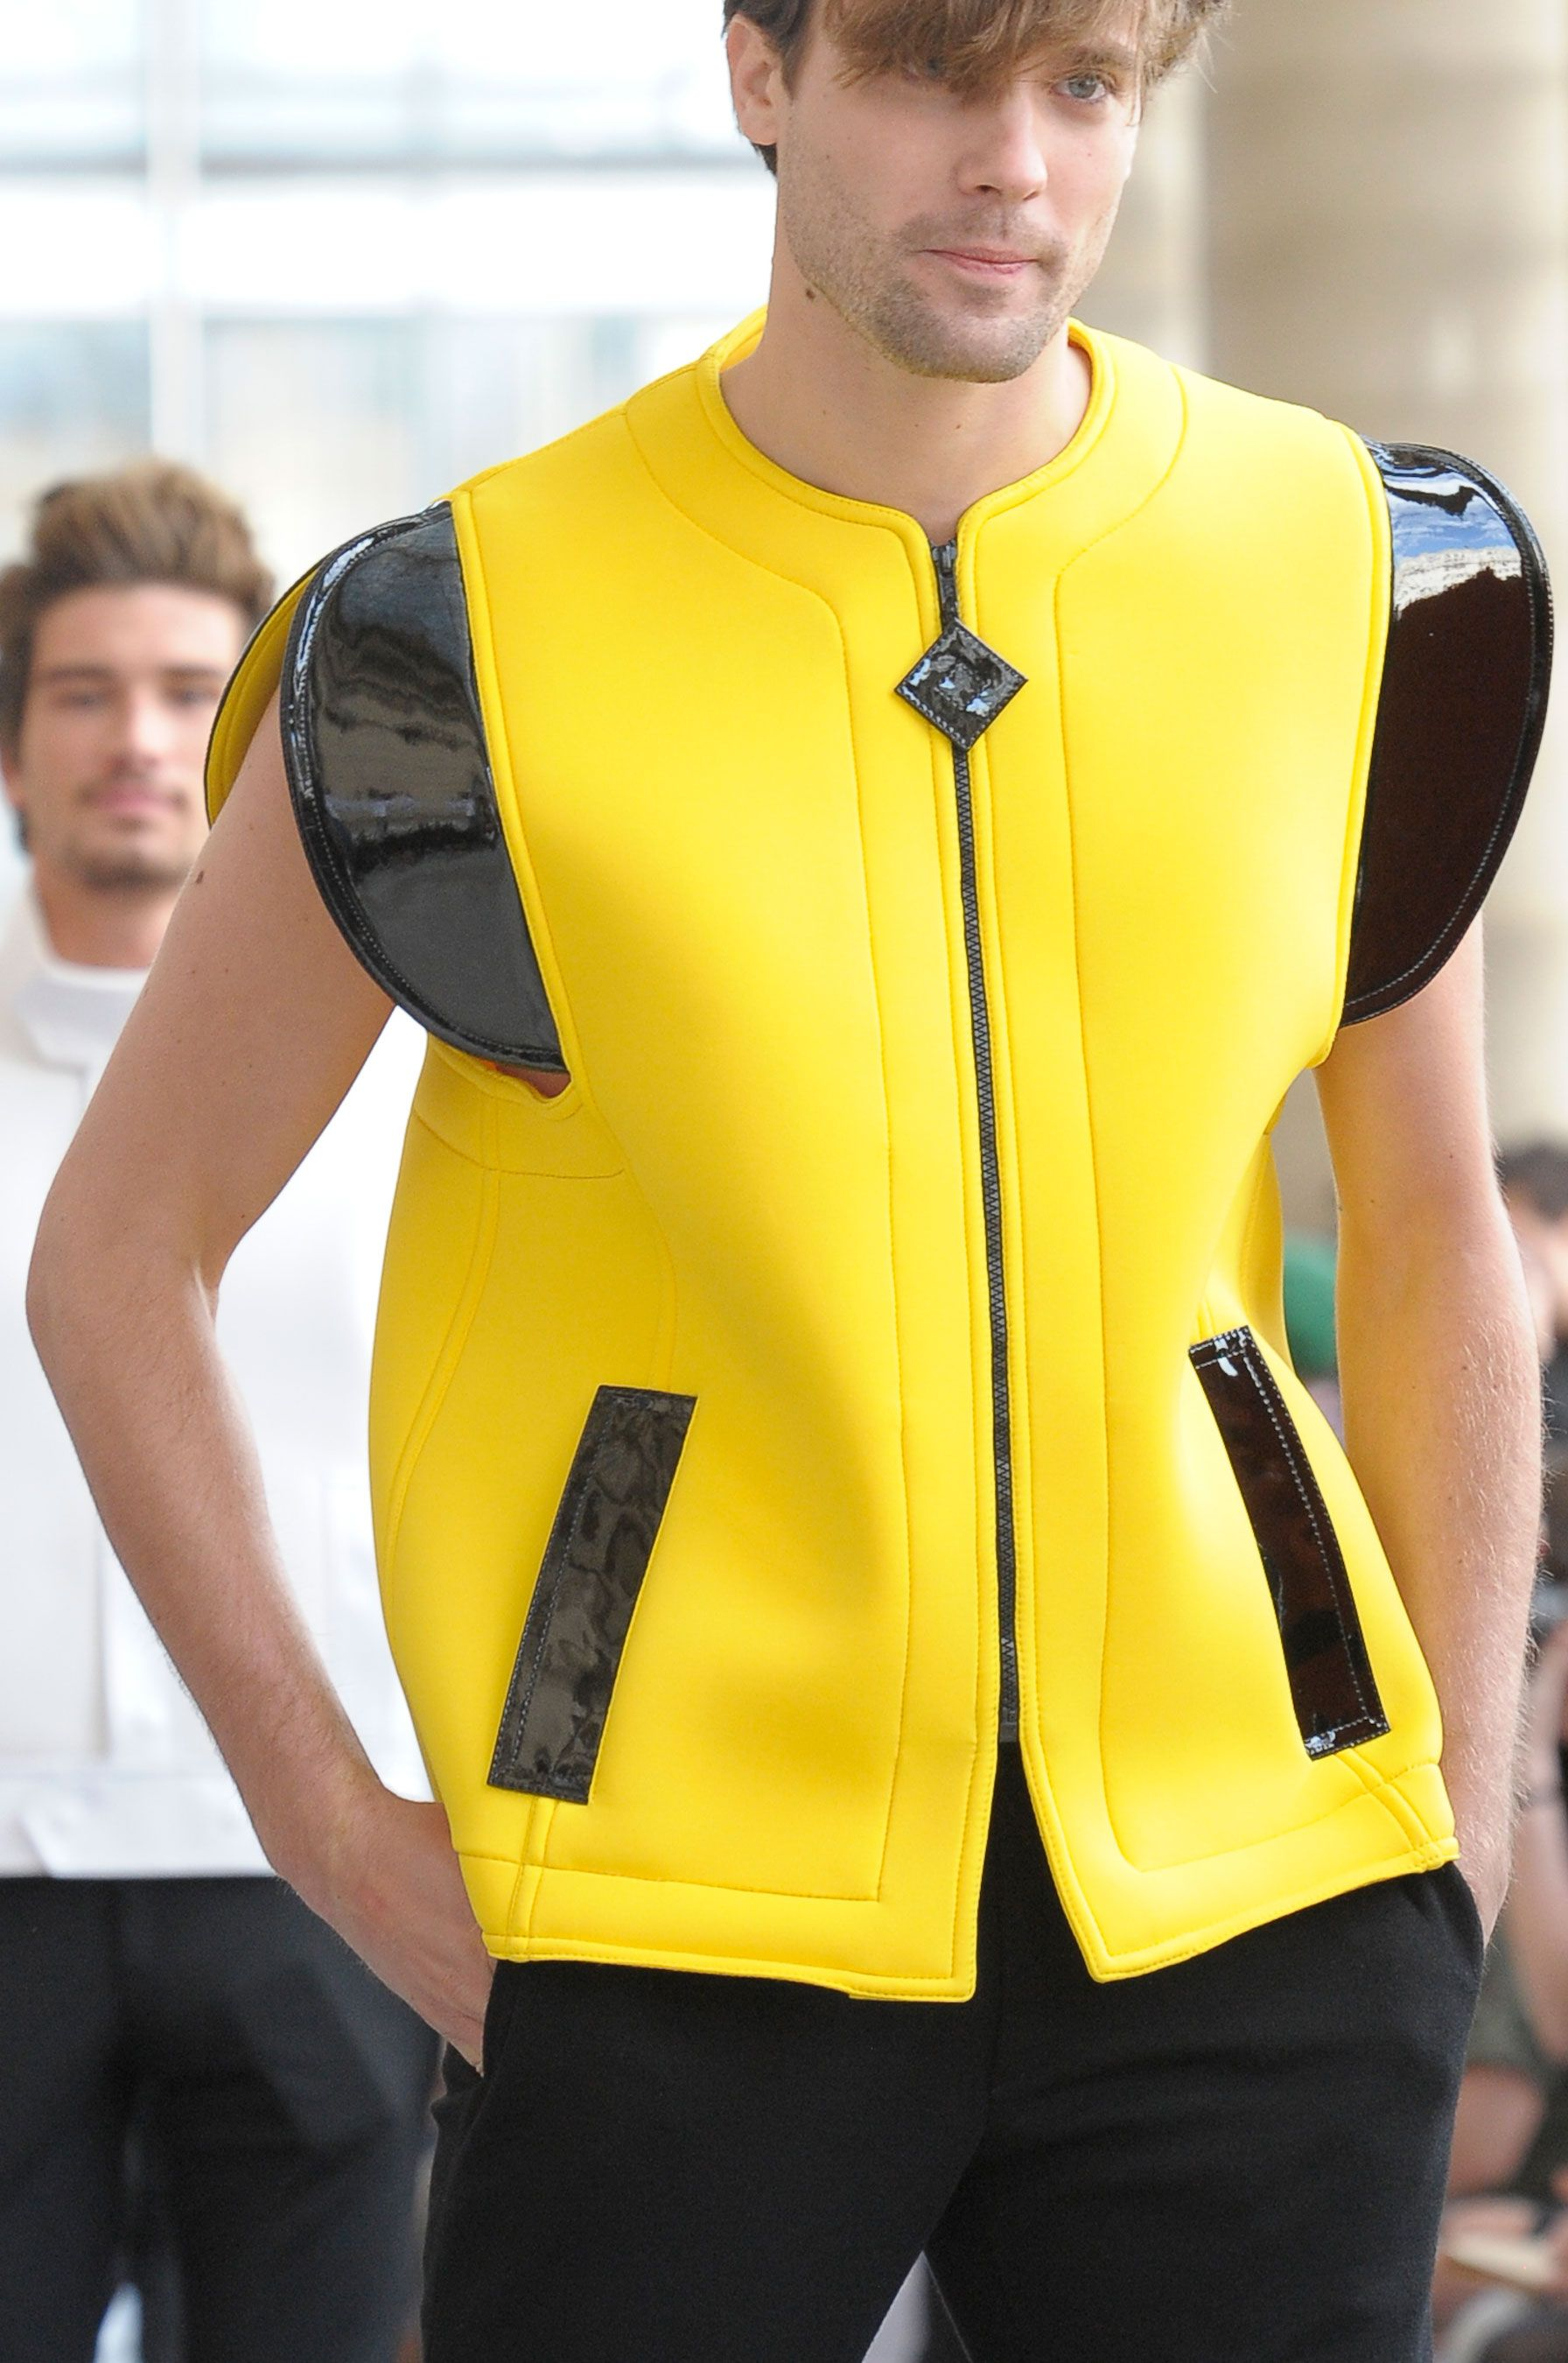 Nicolas Bemberg, Pierre Cardin SS 2013. Any outfit, any color, any style. It all works on him.